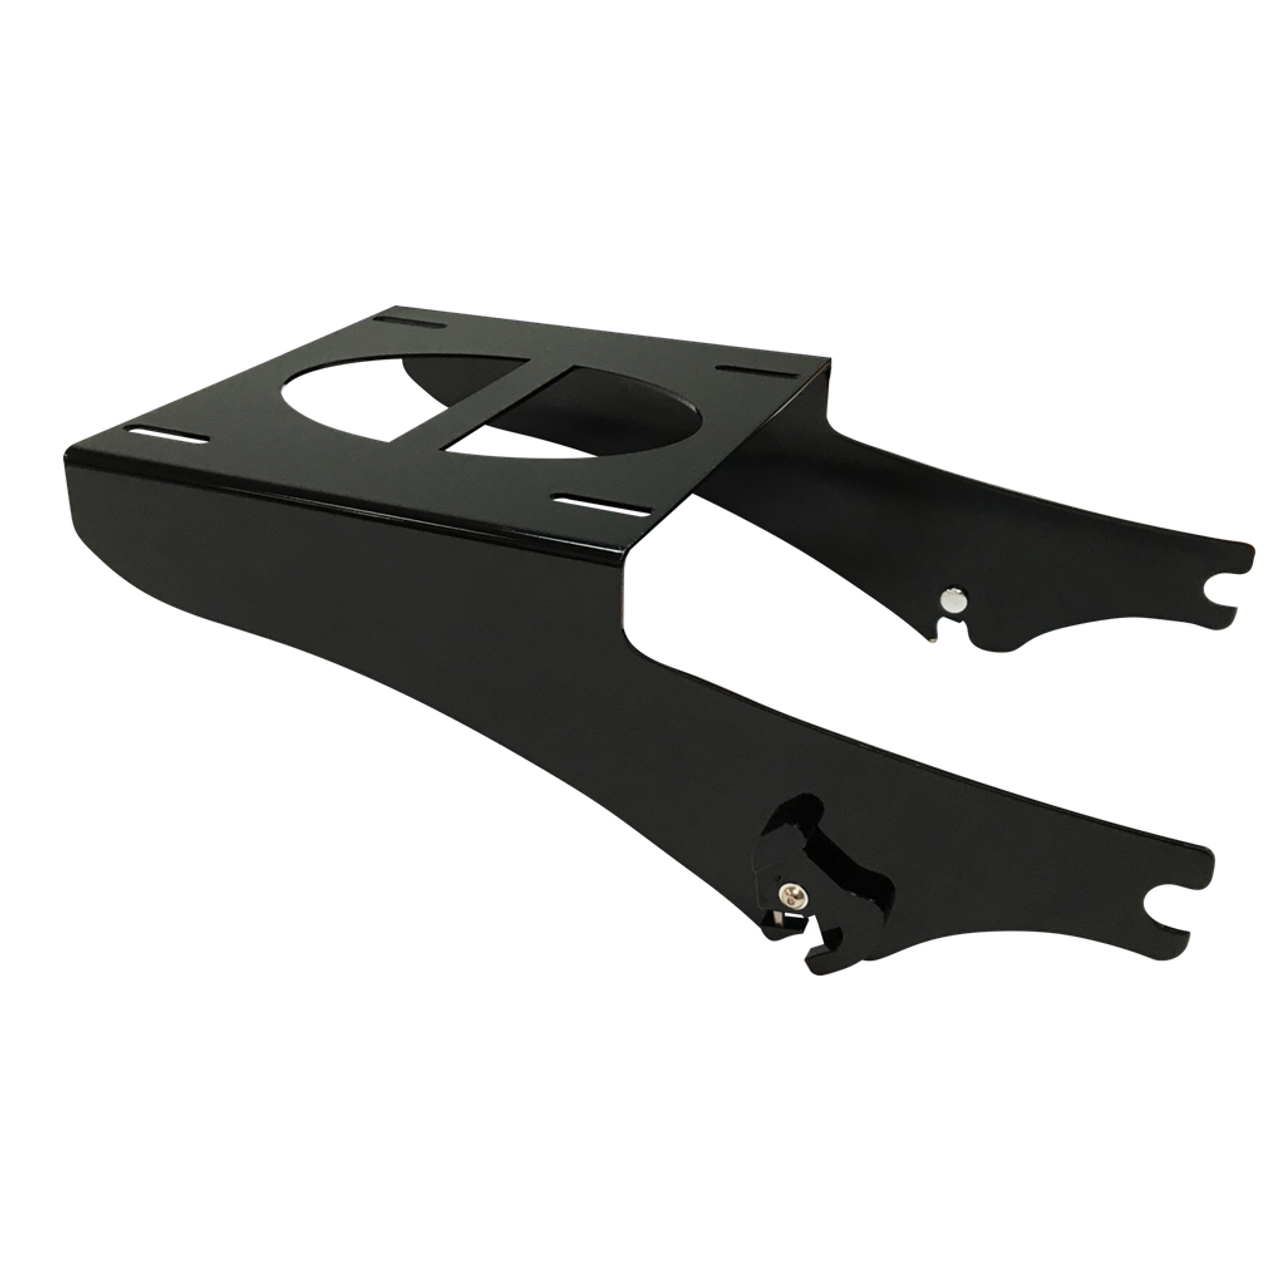 Black Tour Pack Rack: Fits 1997 to 2008 Harley Touring bikes with FRONT 4-point docking station